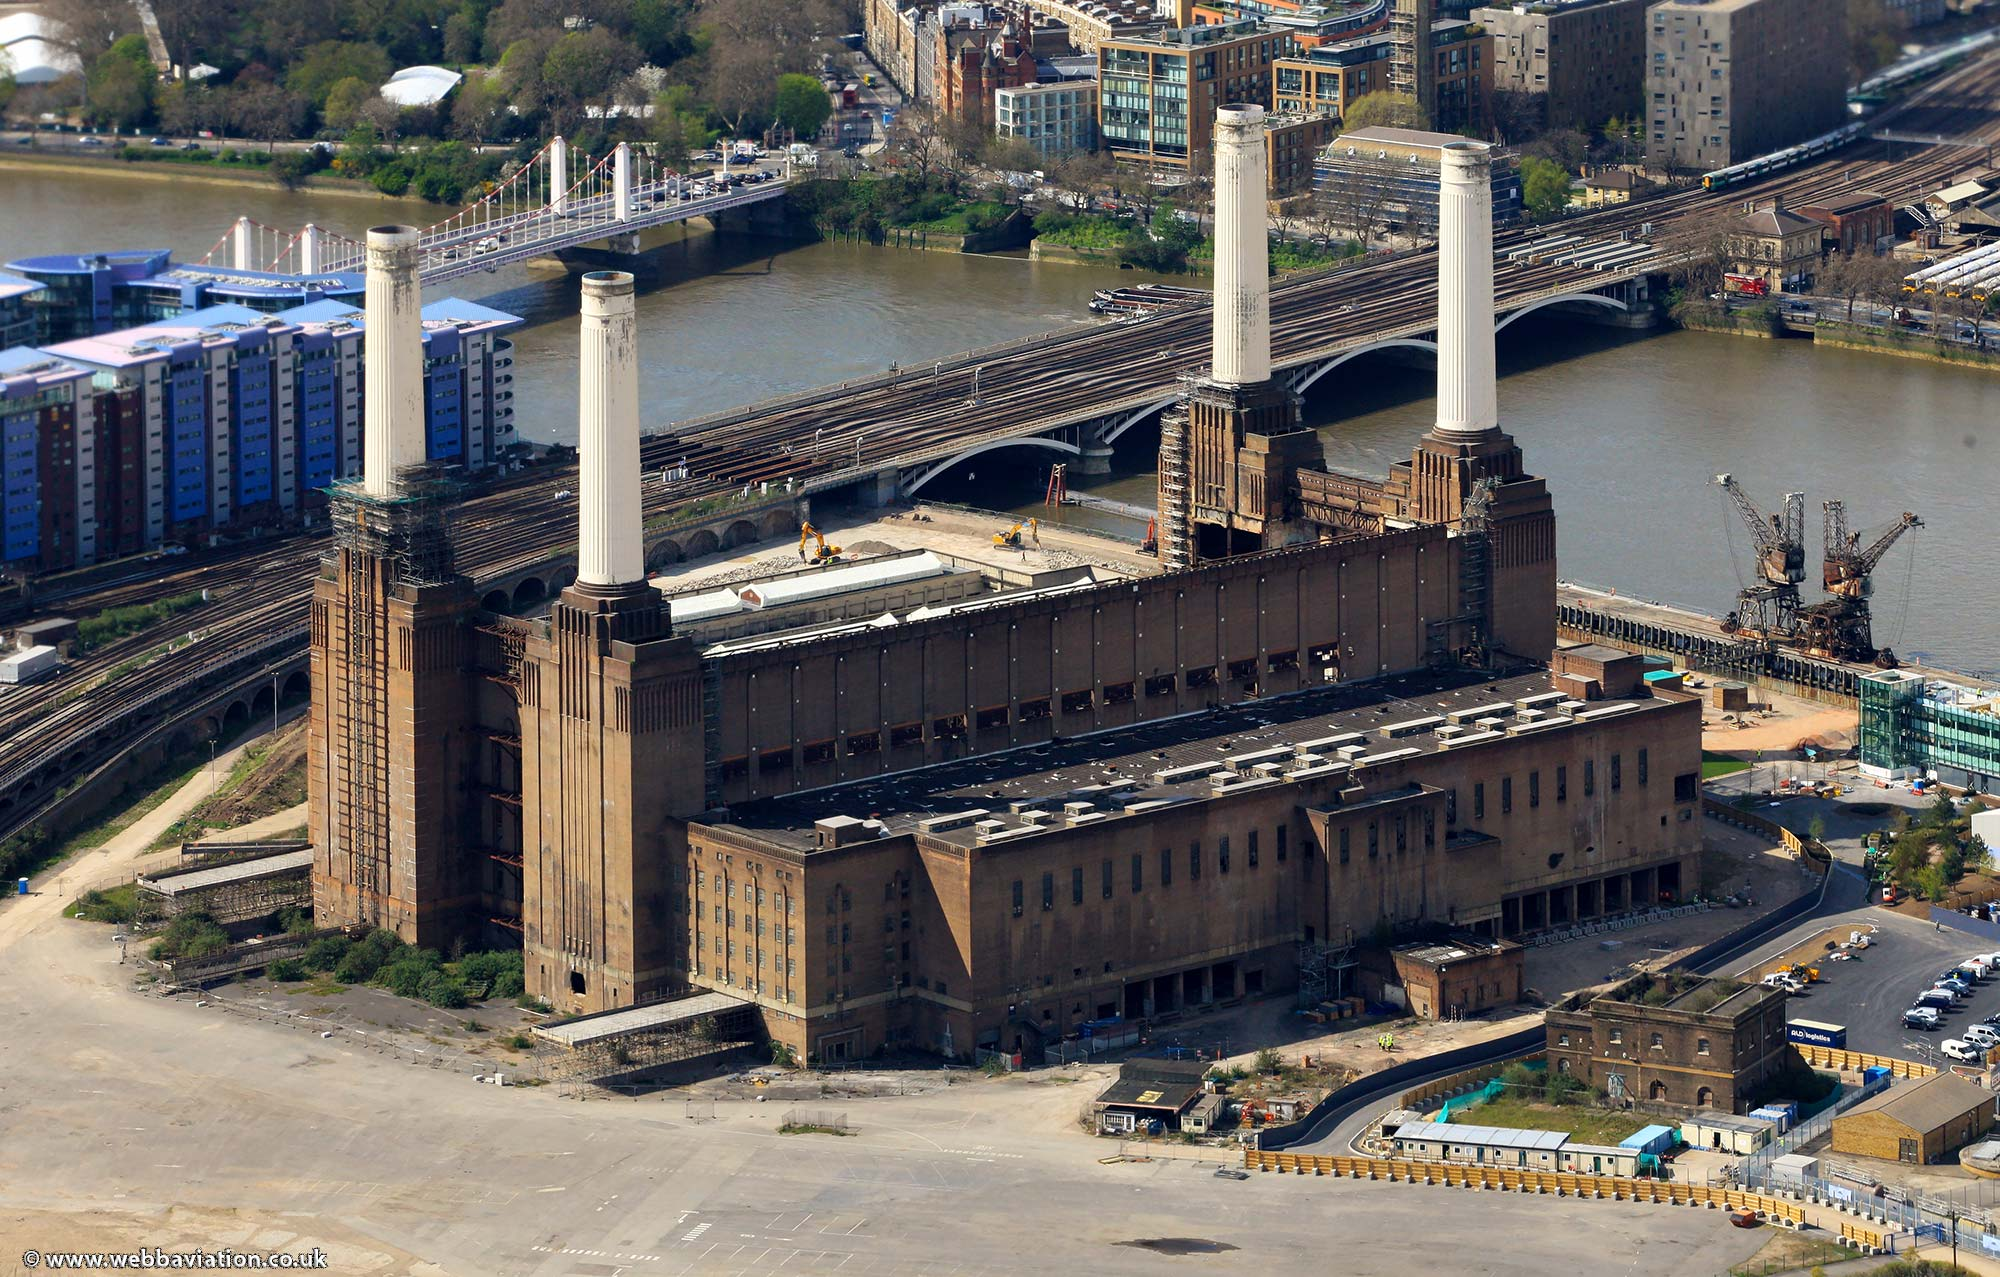 BatterseaPowerStationhb24257.jpg